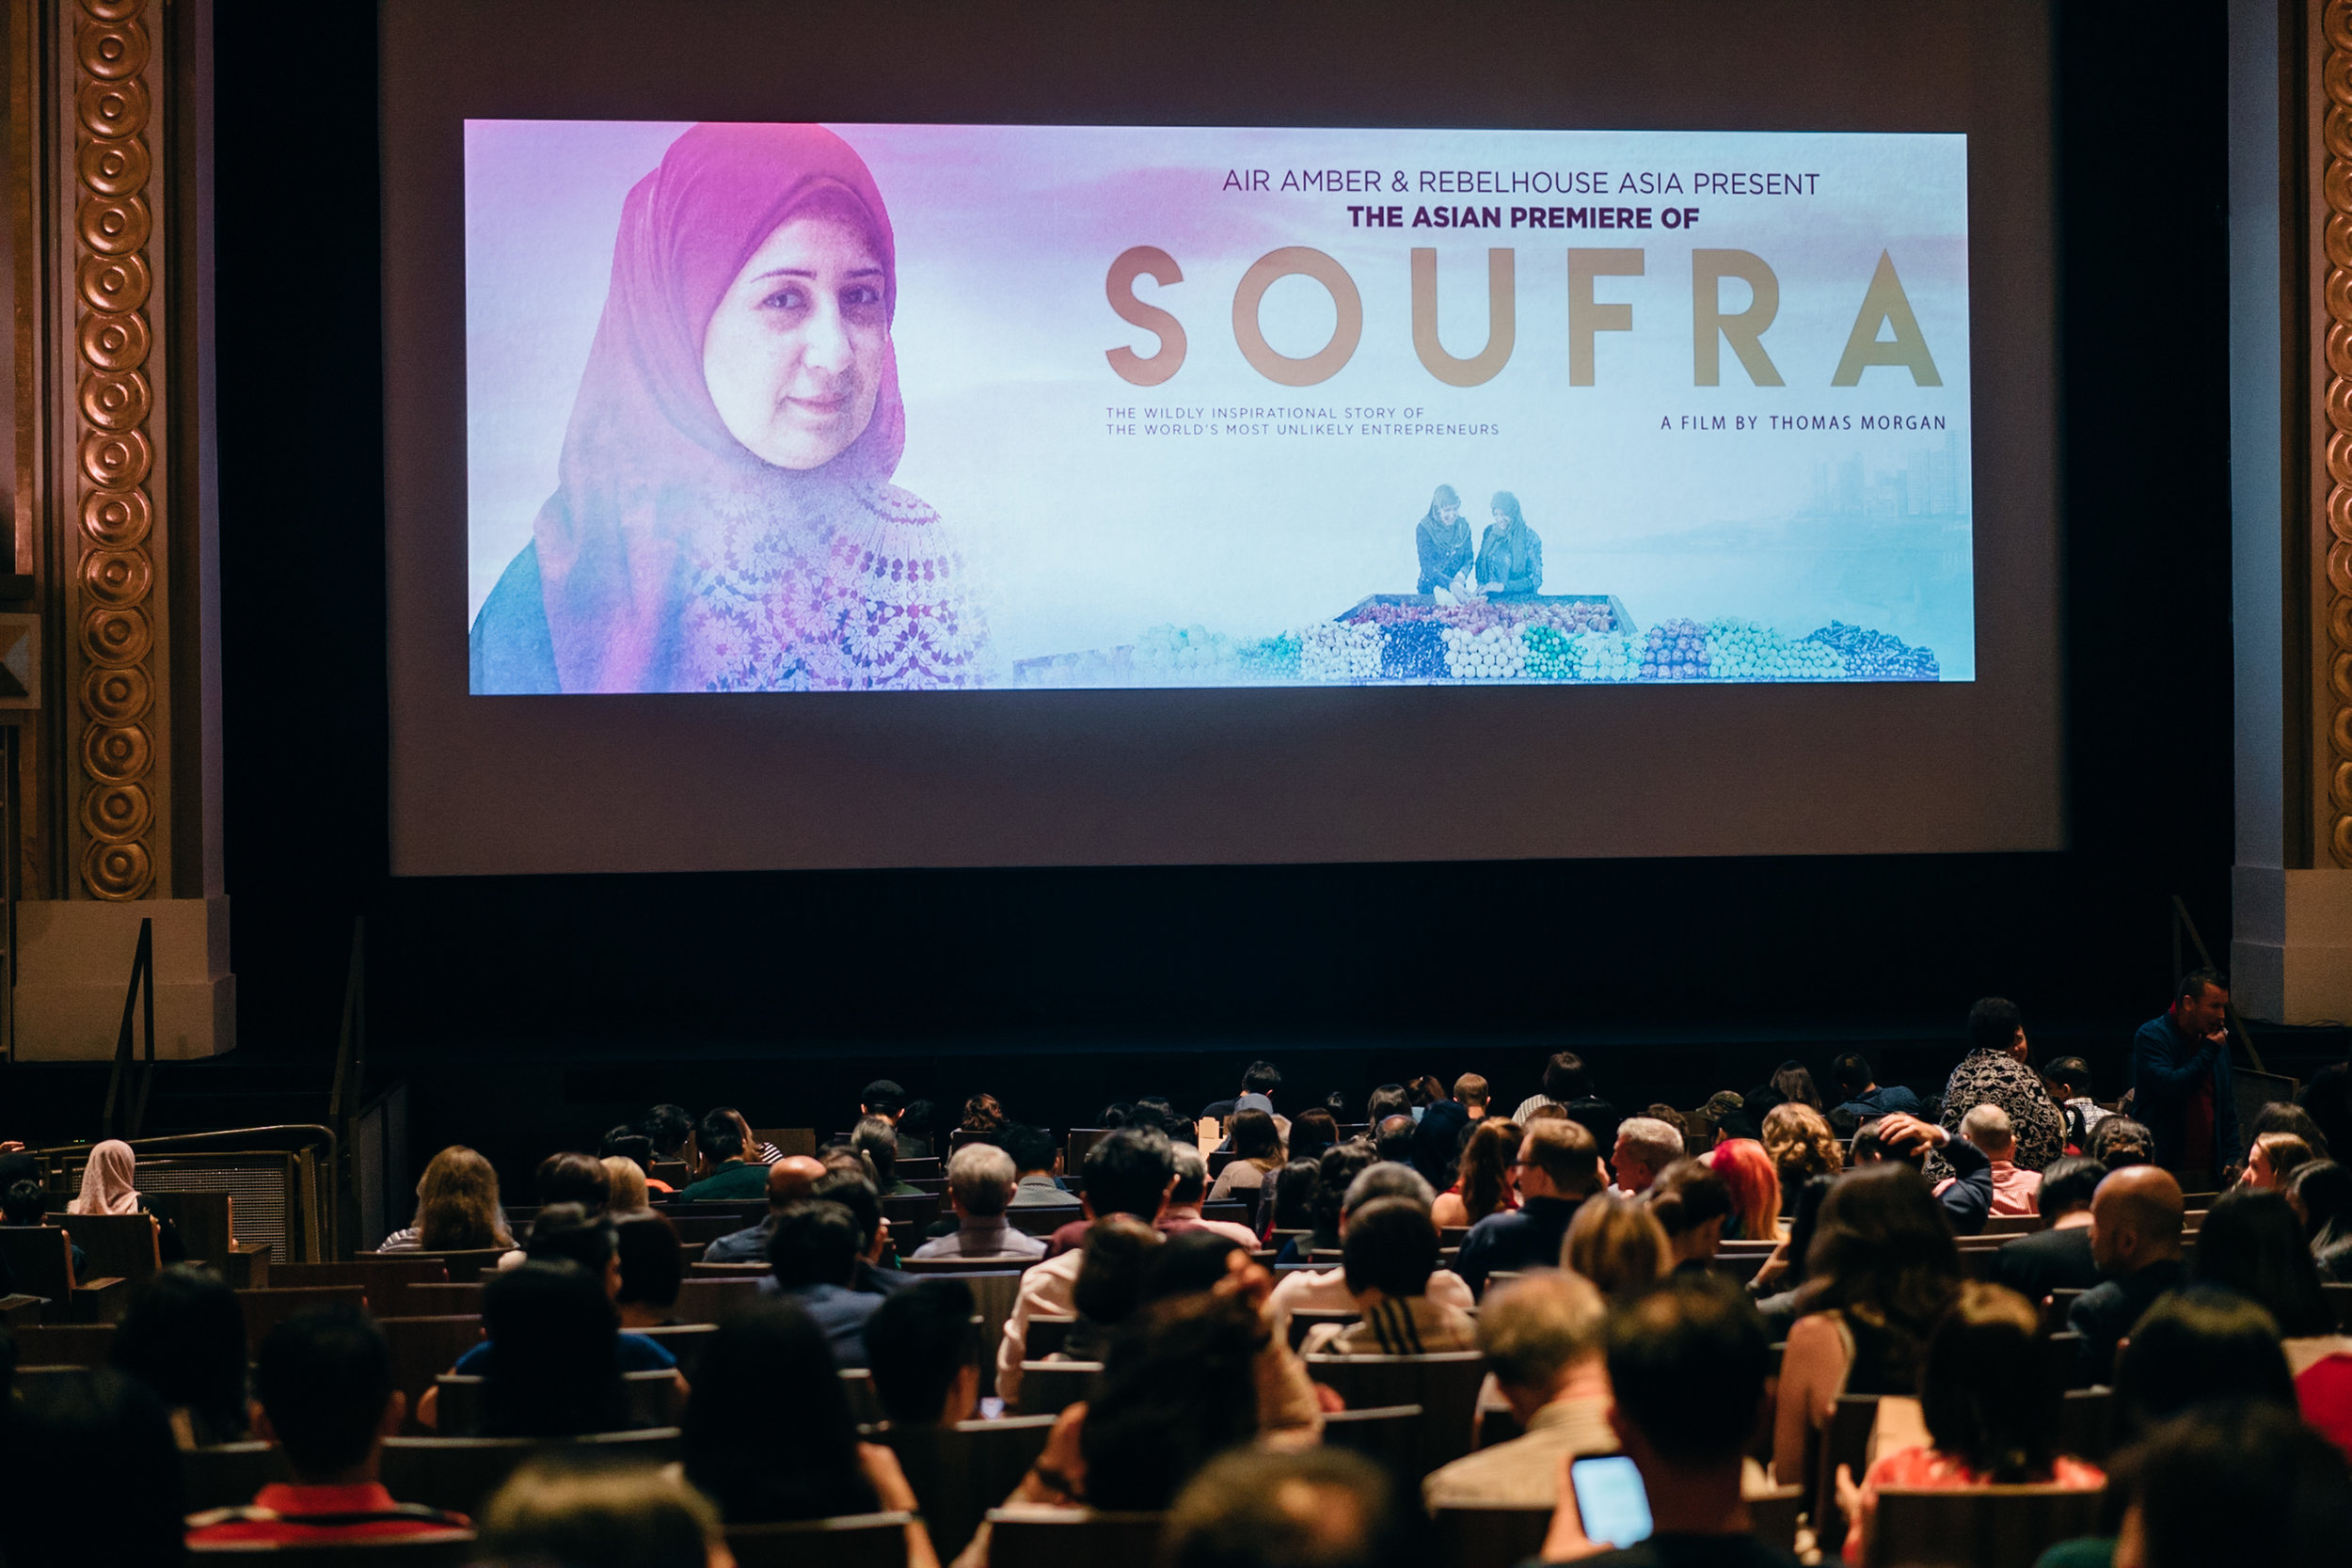 Asian Premiere of Soufra